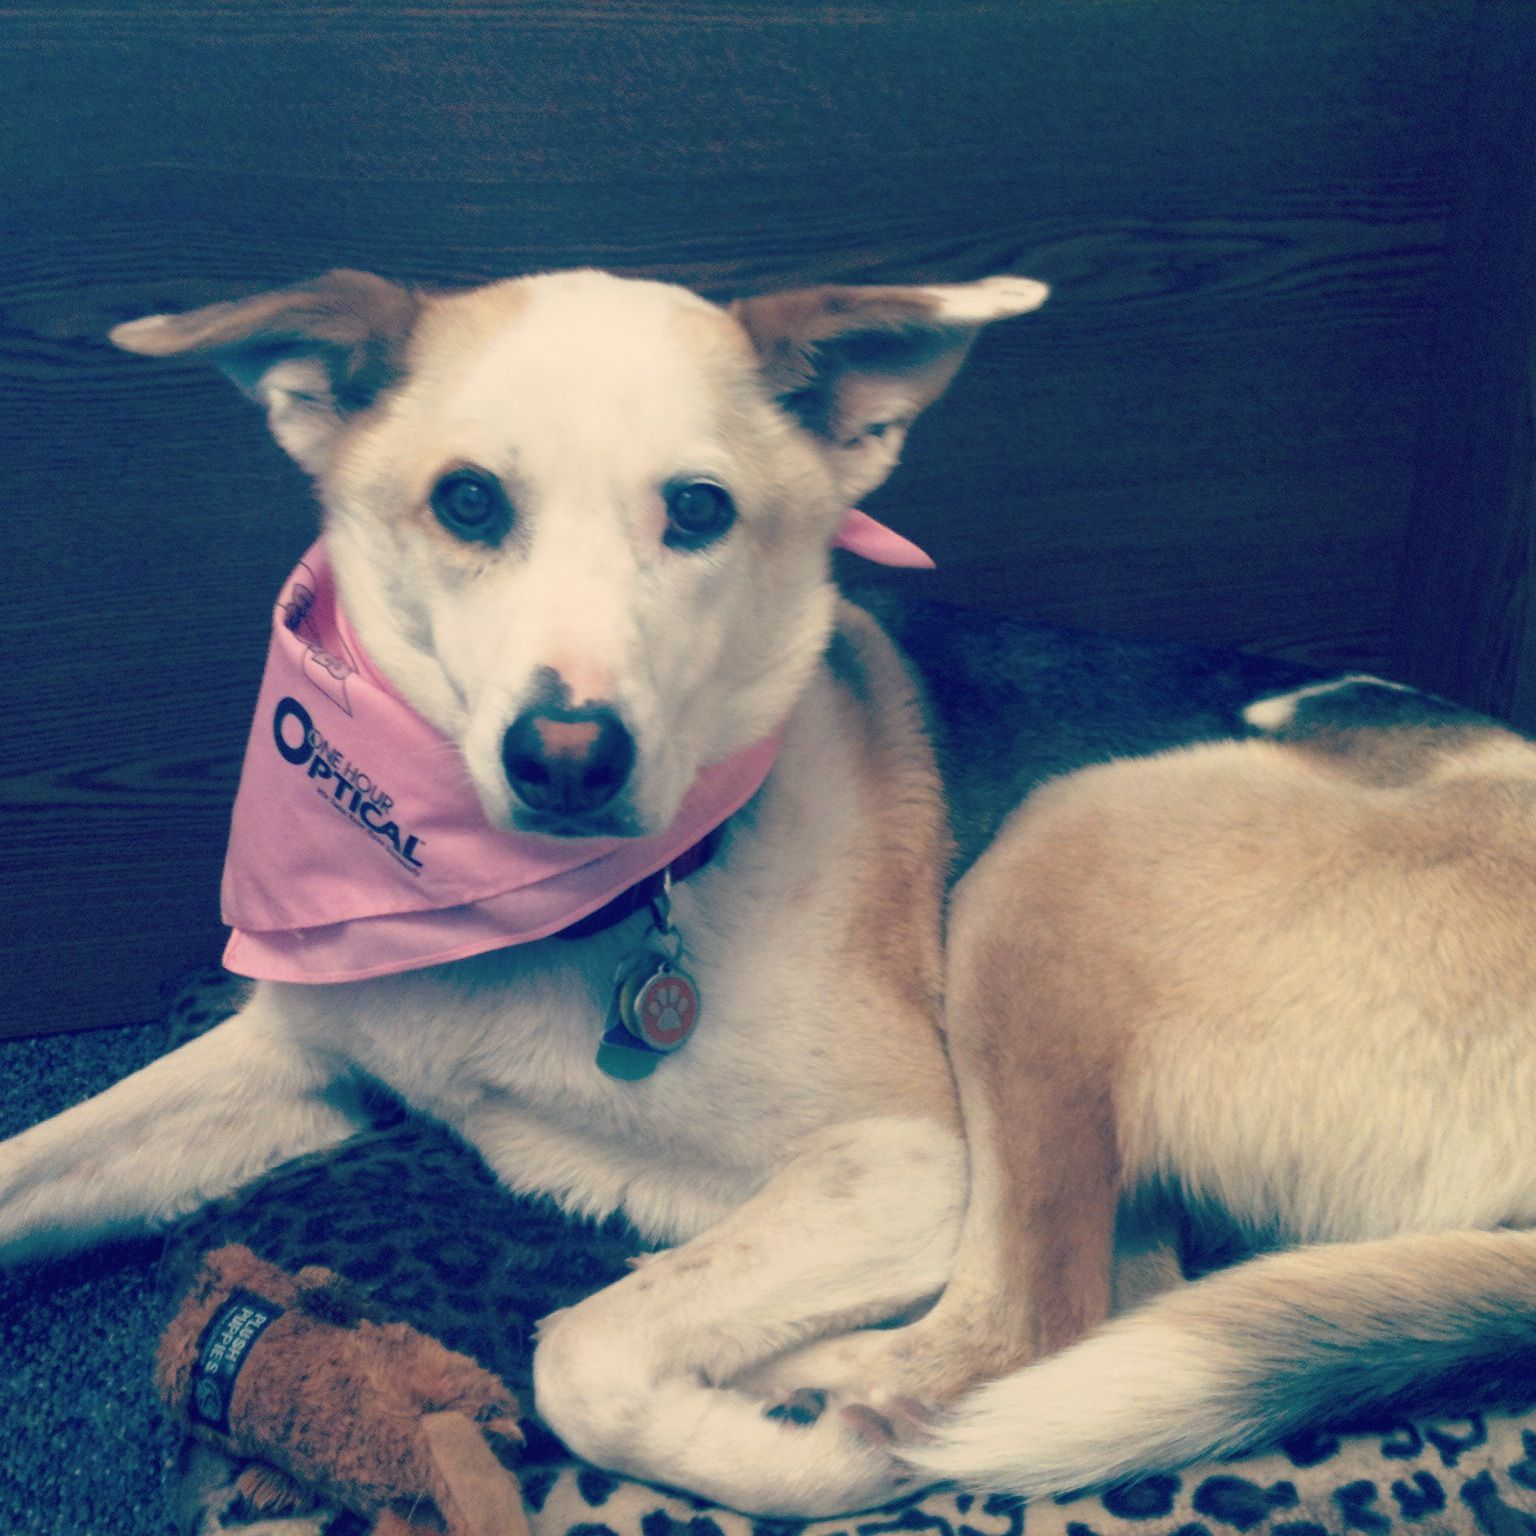 Meet Avy. She's a 3 year old Husky Mix adopted from